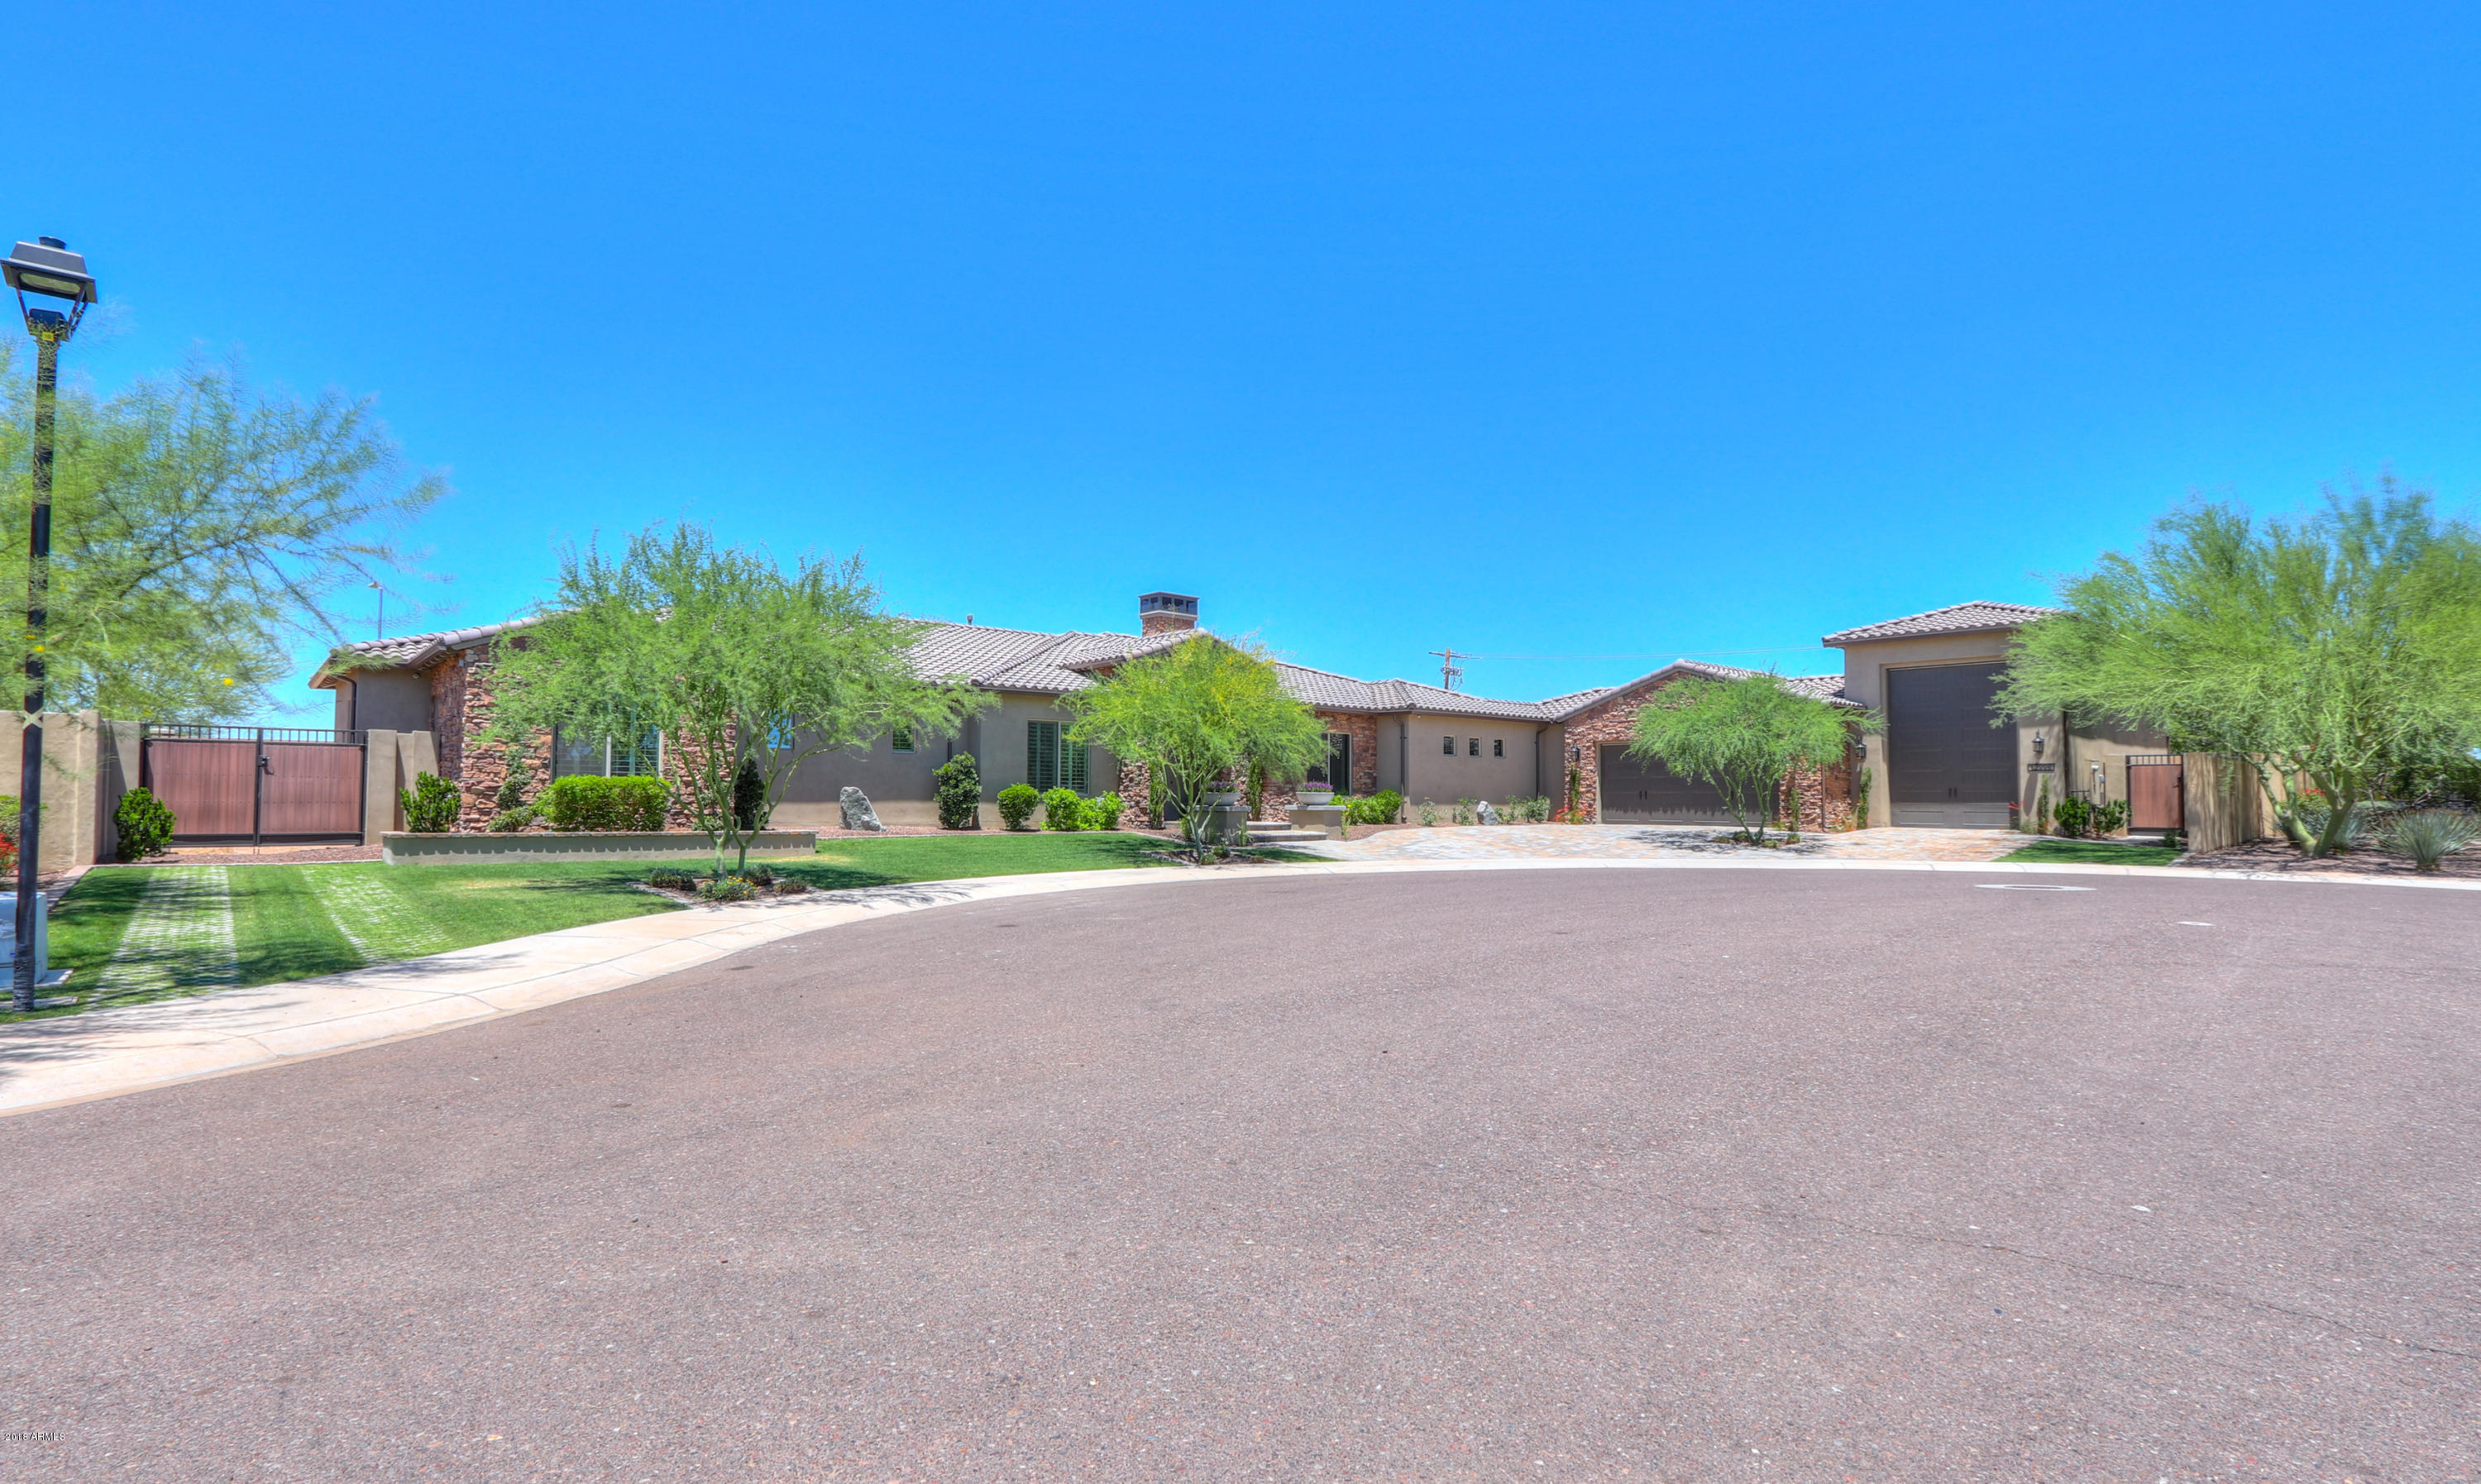 13998 N 74TH Lane, Peoria, Arizona